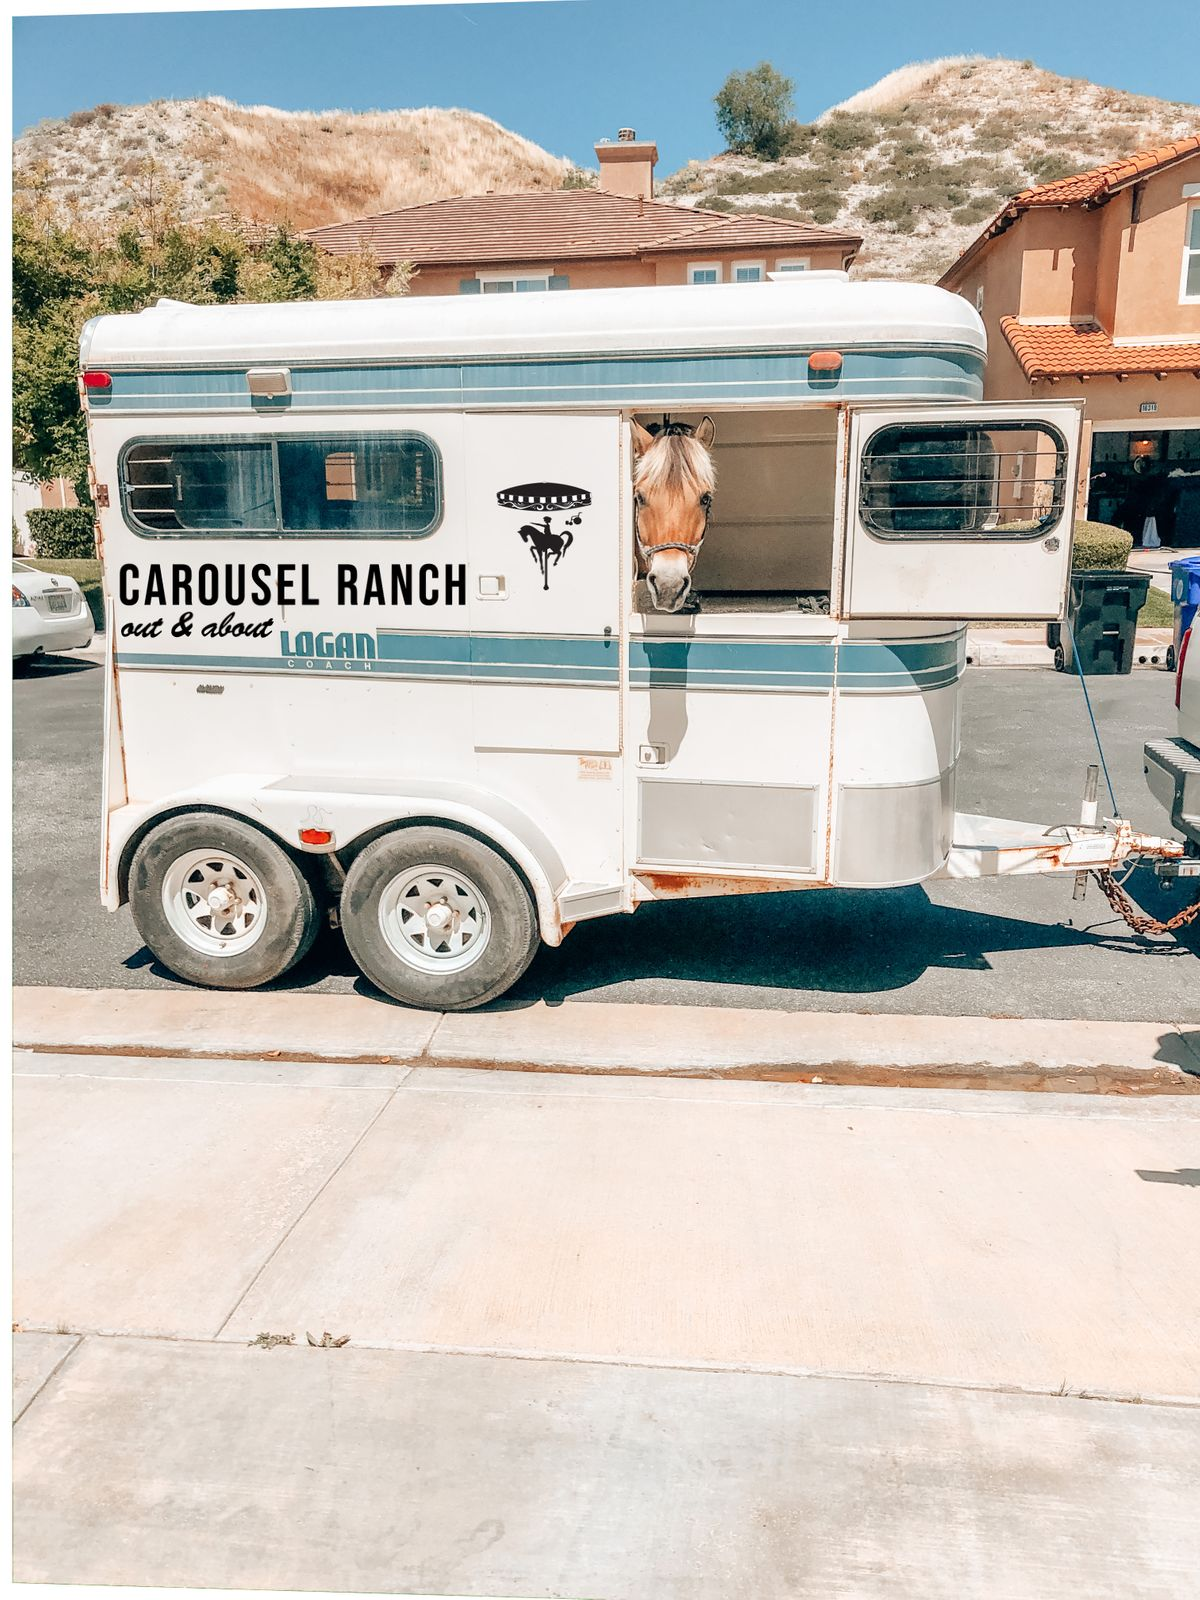 carousel ranch trailer.jpg